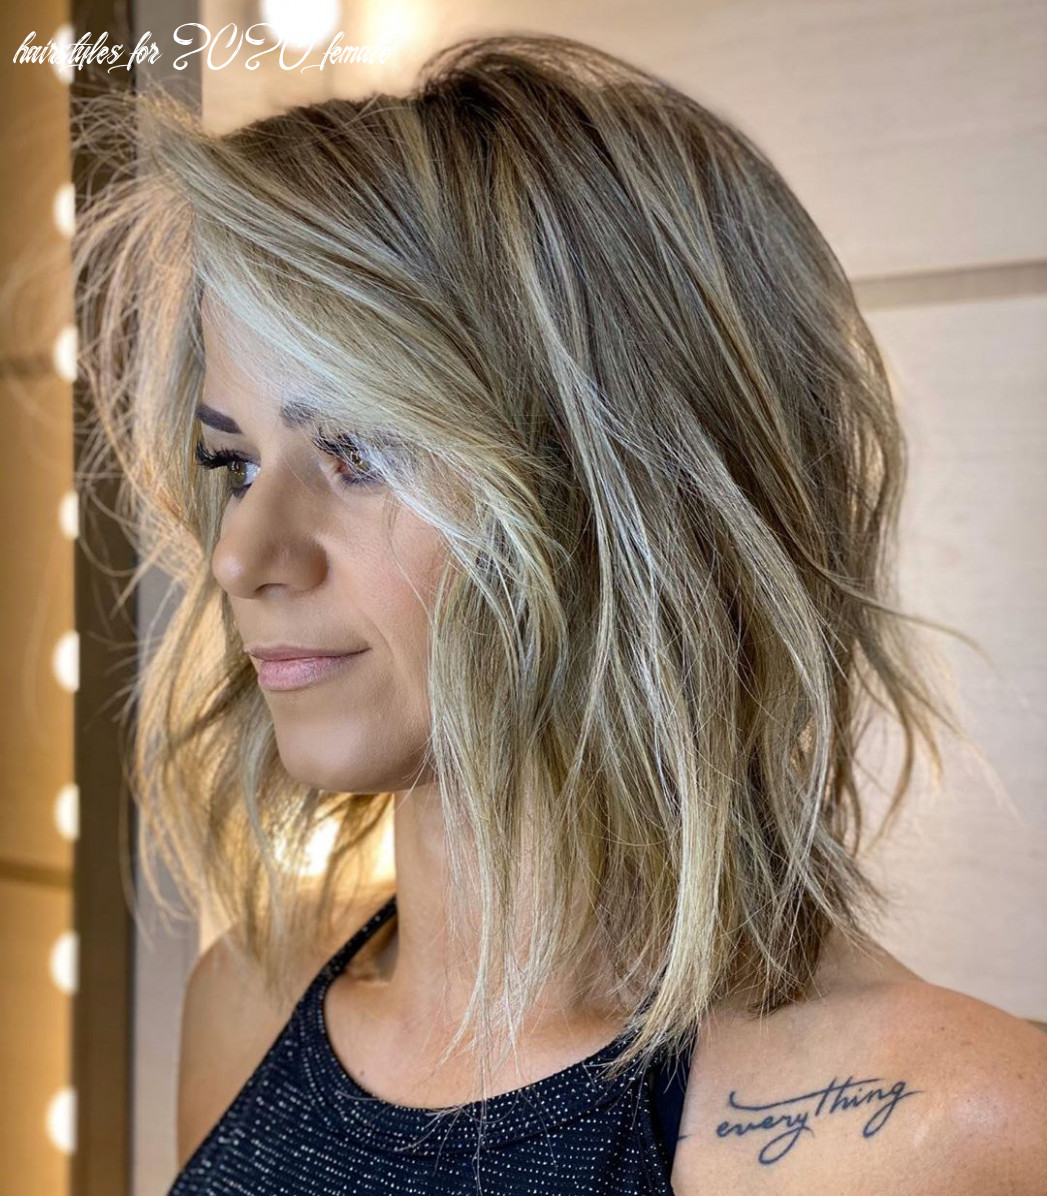 9 newest haircut ideas and haircut trends for 9 hair adviser hairstyles for 2020 female